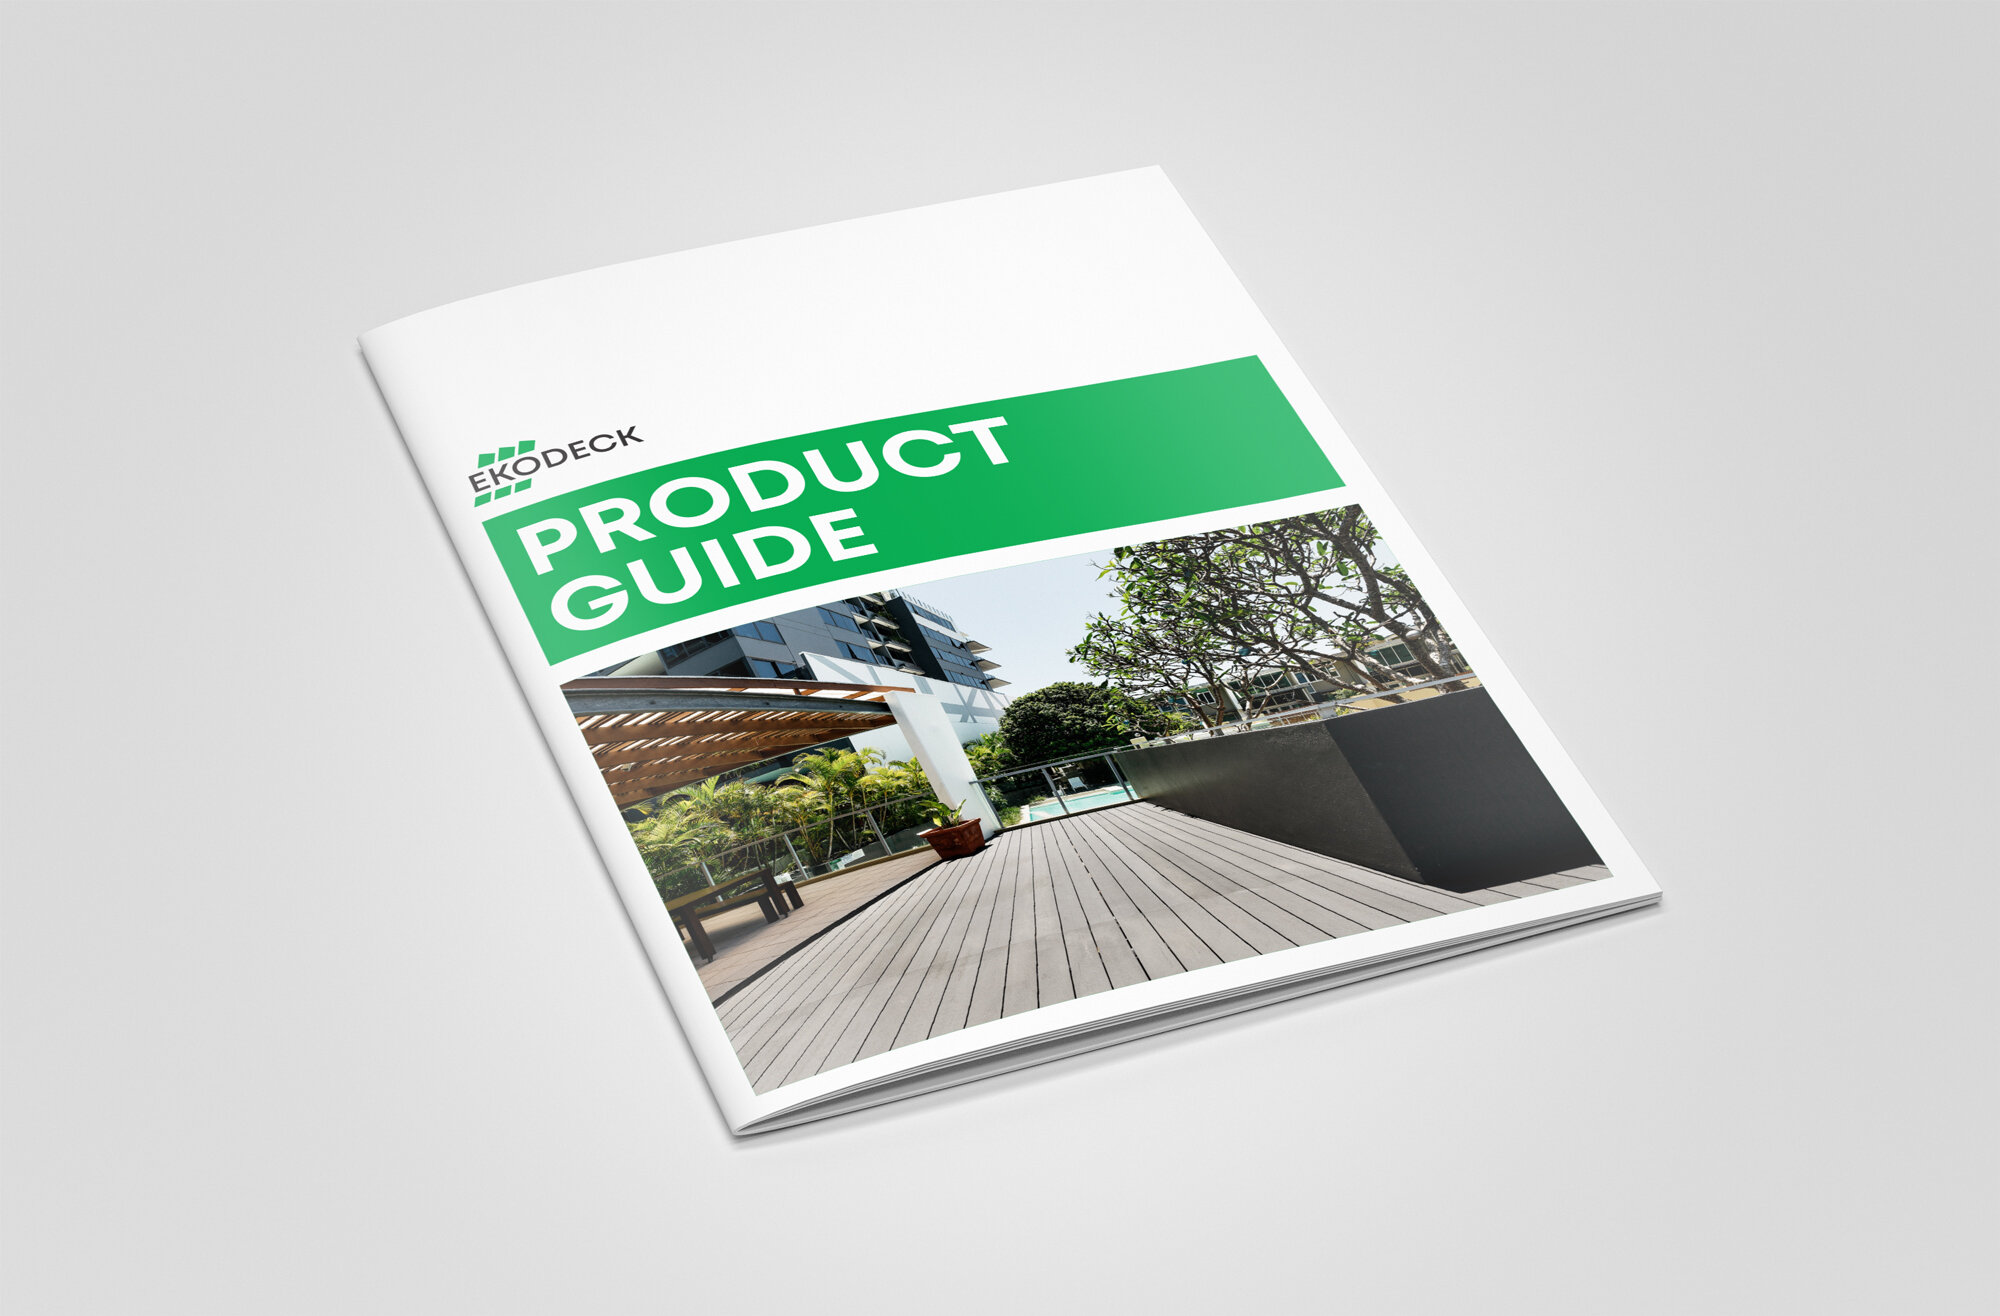 Product-guide_2.jpg